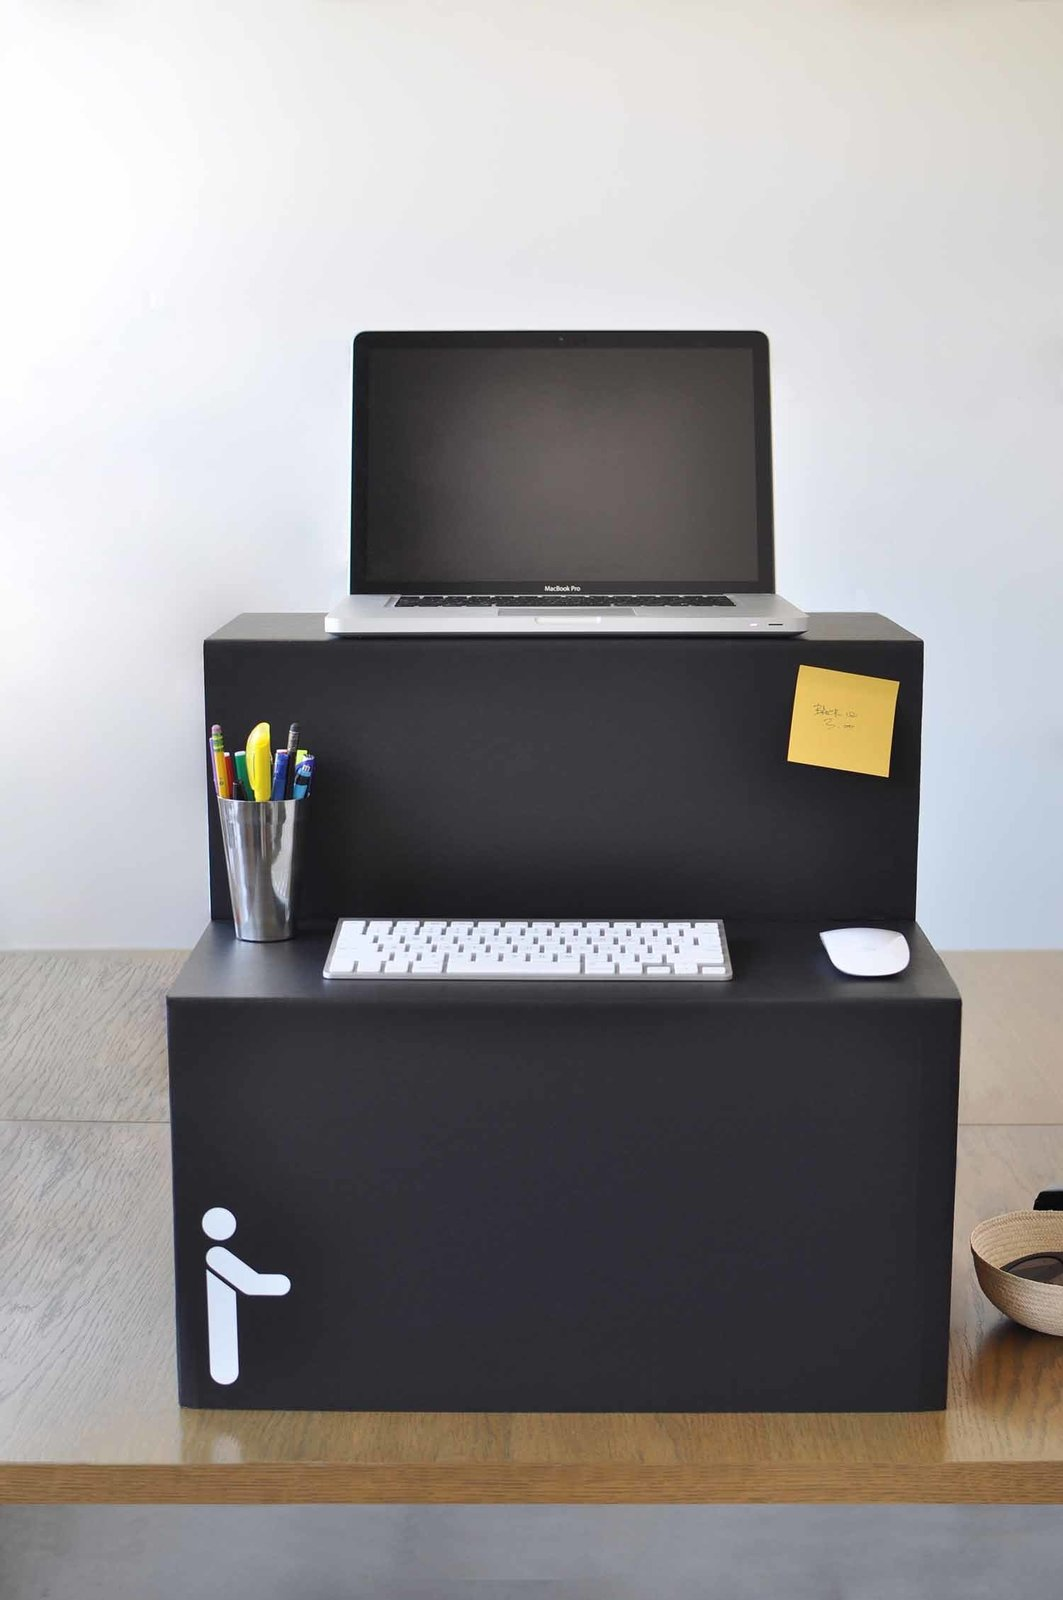 The Oristand opens like a cardboard box, meaning no tools or screws are needed for assembly. The two-pound collapsible work station measures one-inch-wide when folded, which makes it convenient for laptop workers who shuttle their business between the office and home.  Work and life free from This $25 Upright Desk Eliminates Your Excuse Not to Stand